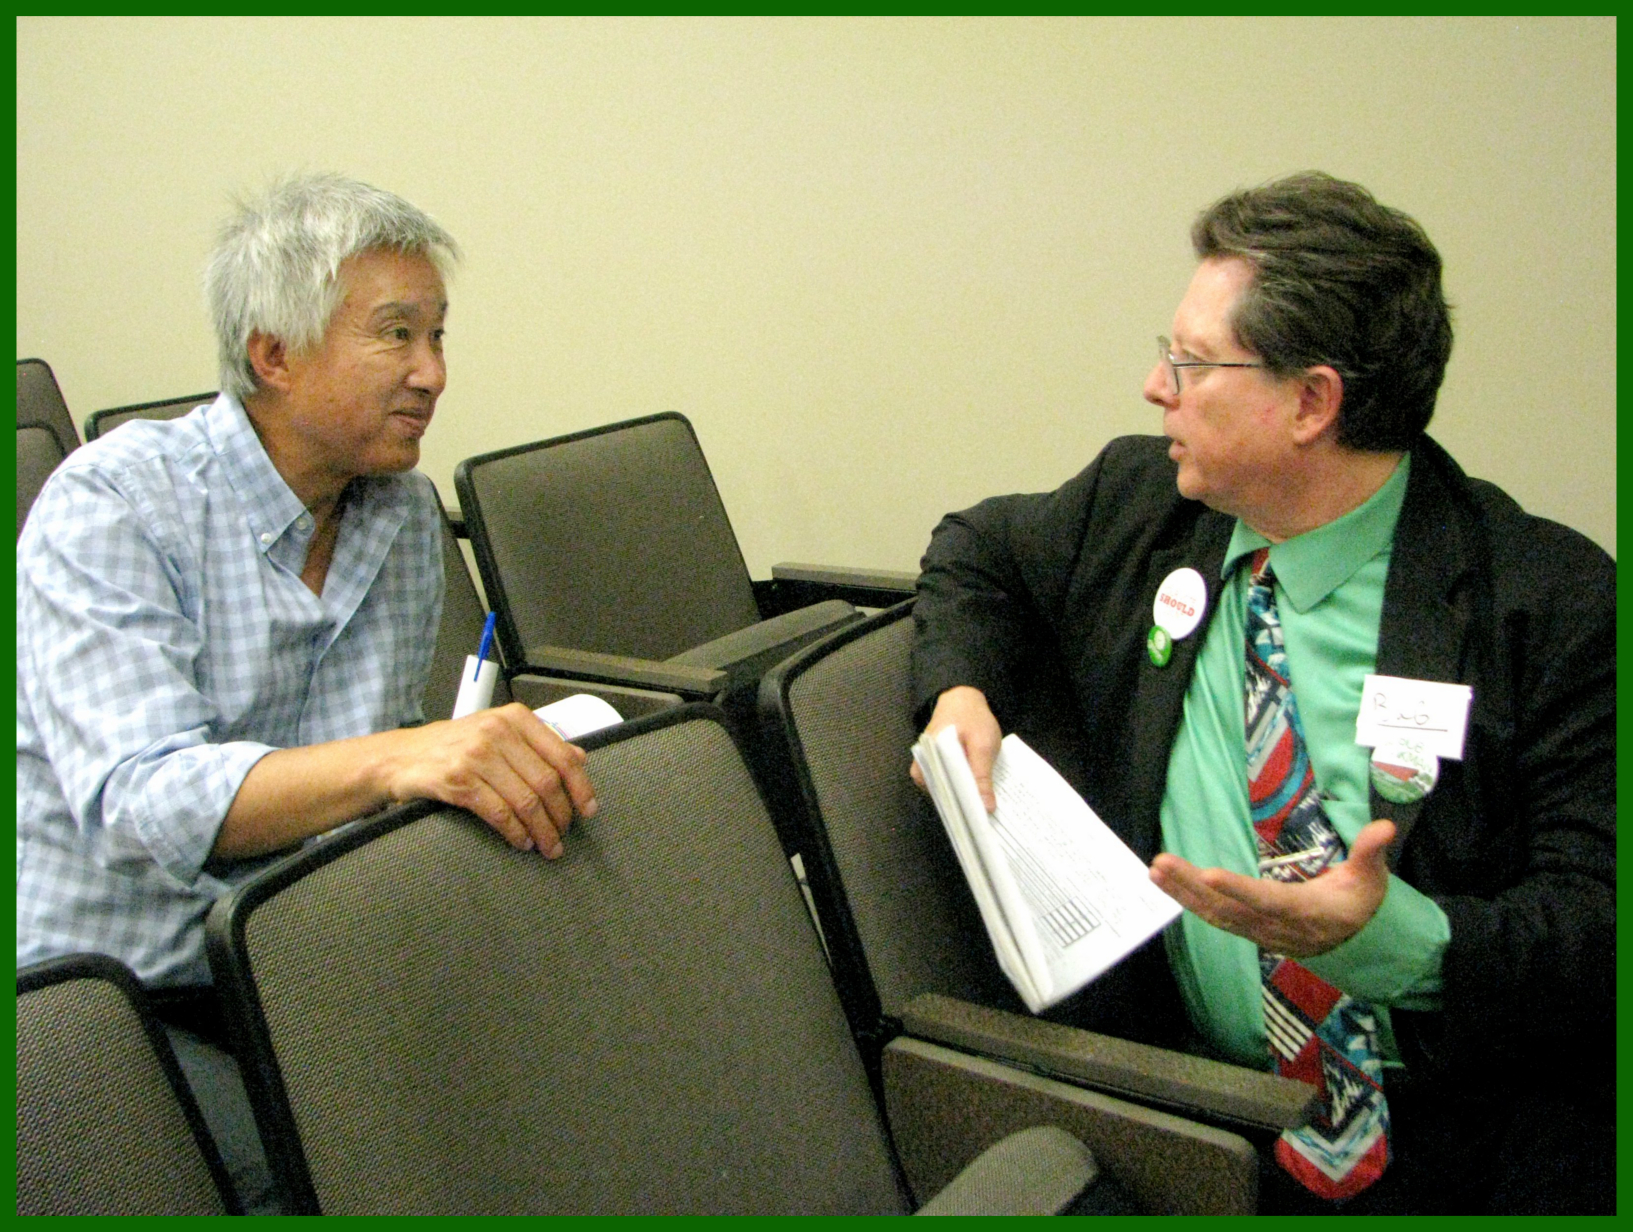 Bob Jonkman chats with LPC Ray Wong